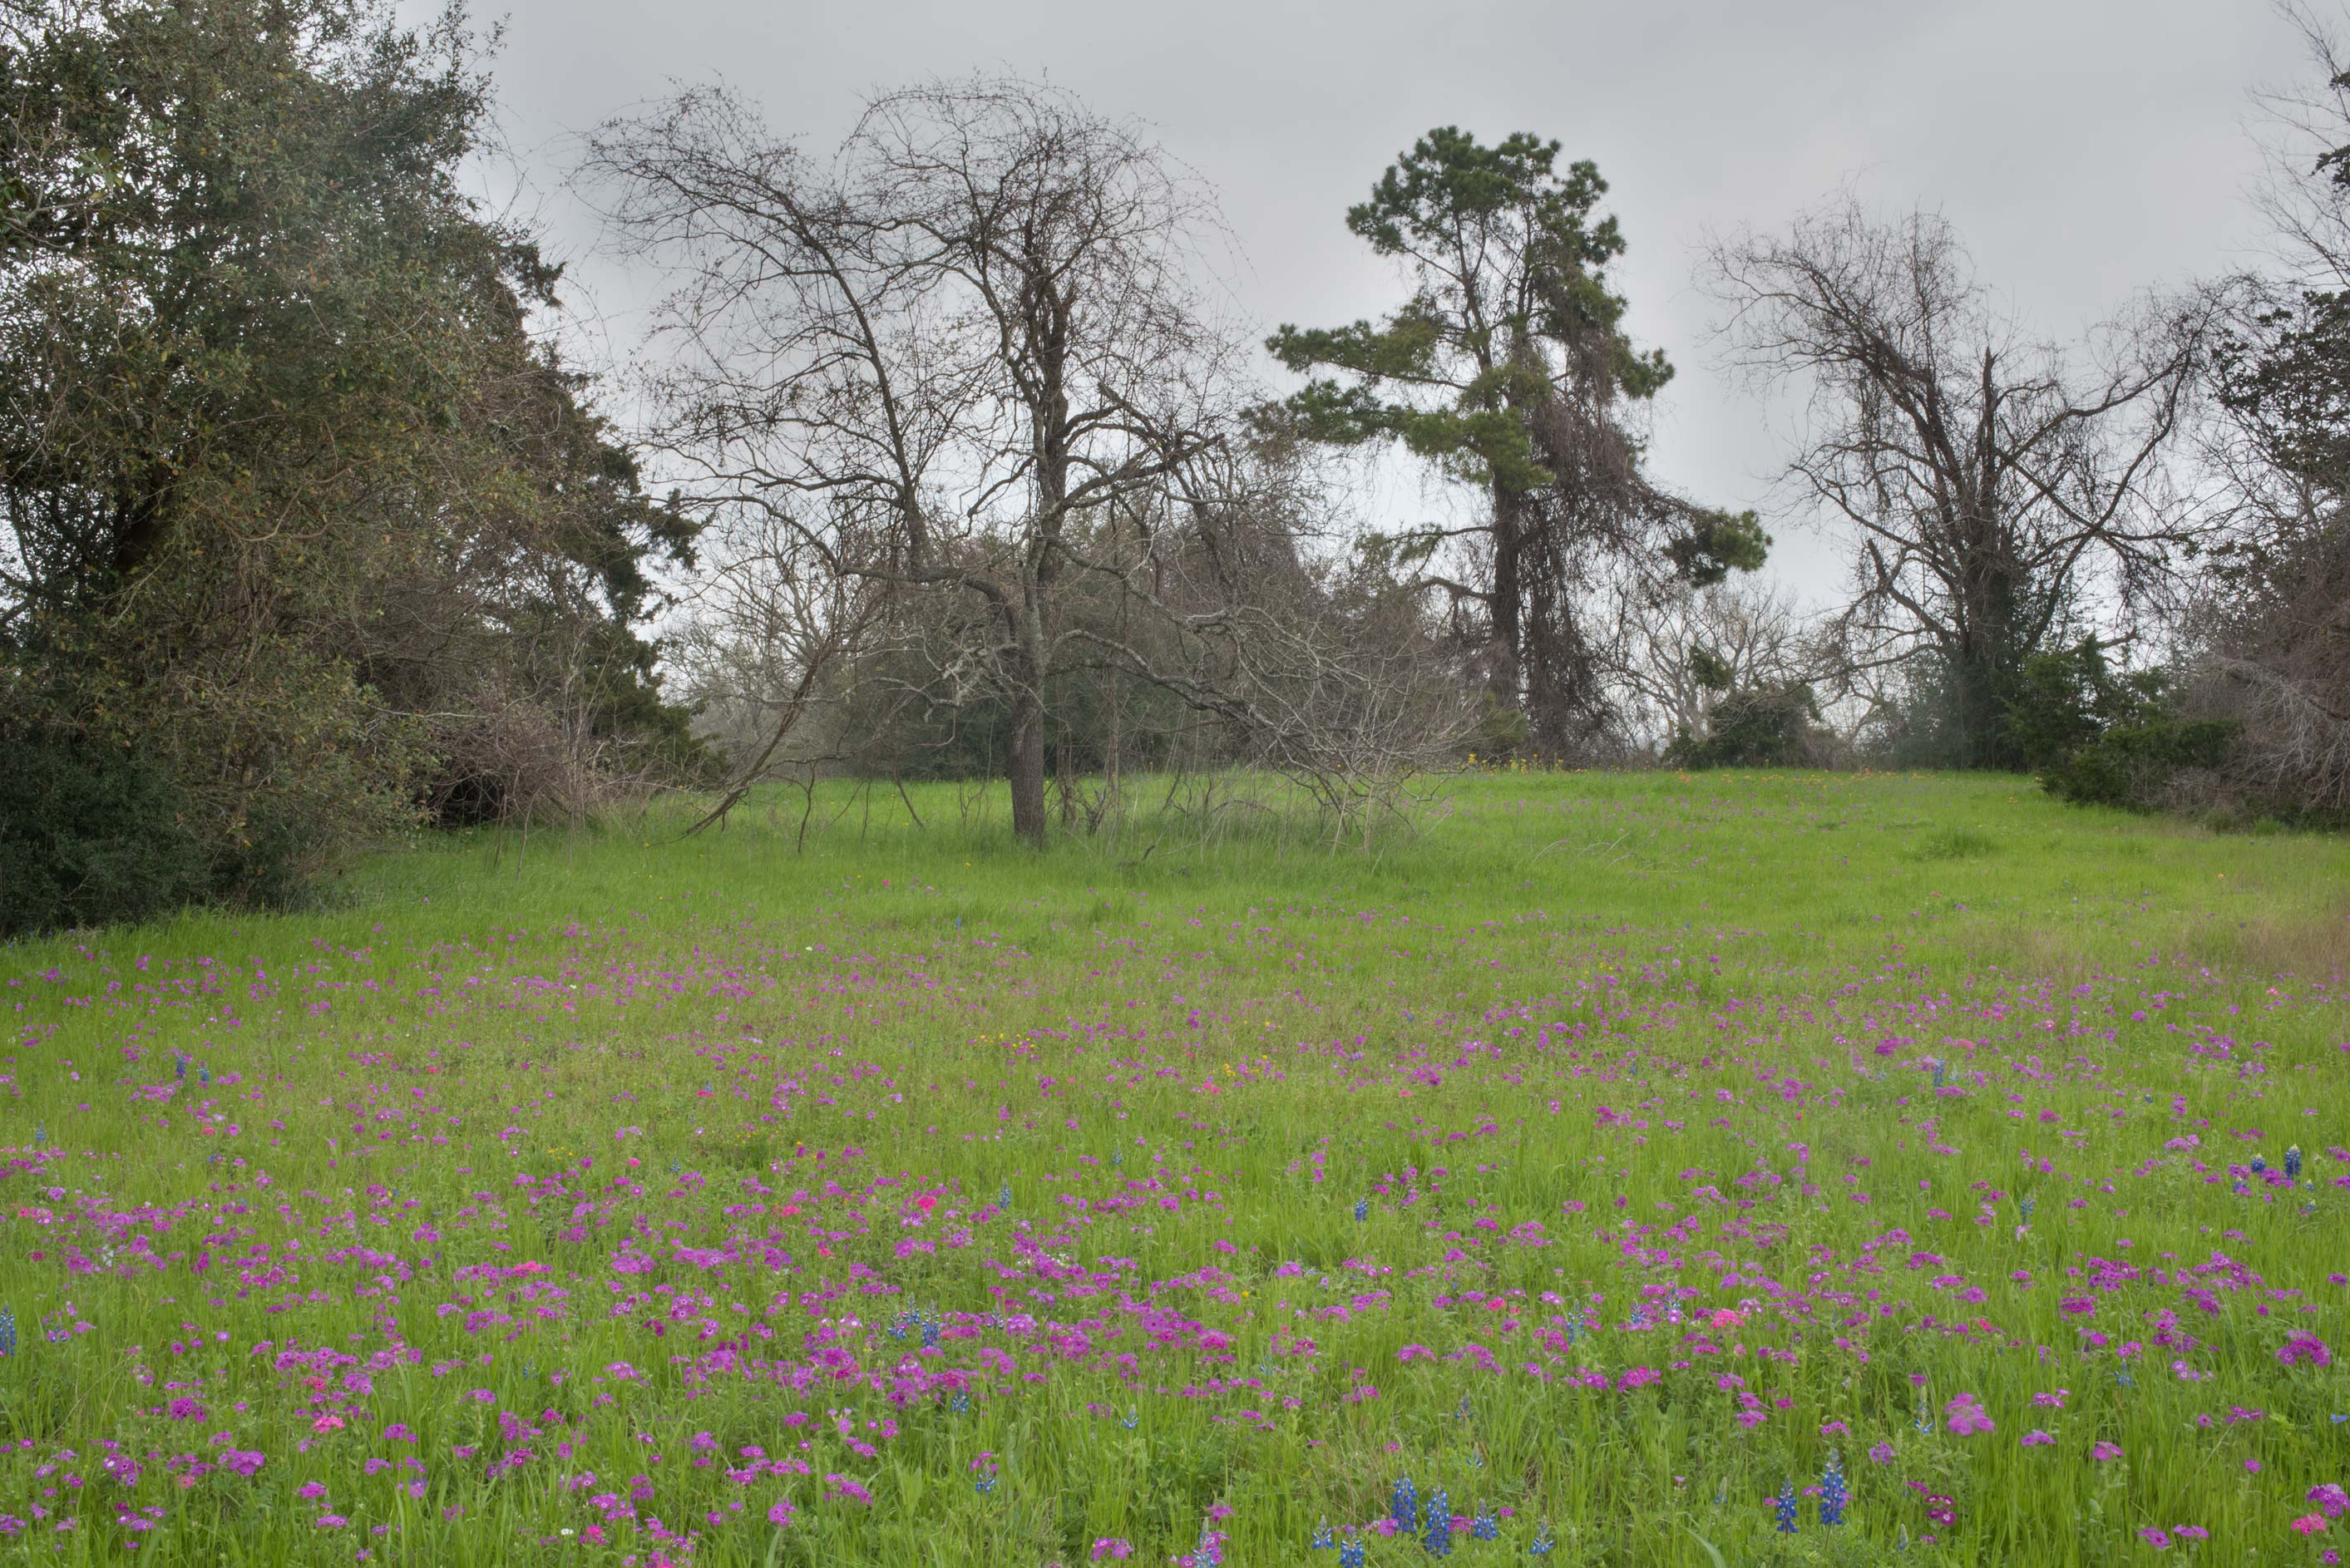 Beginning of bloom of pointed phlox (Phlox...State Historic Site. Washington, Texas